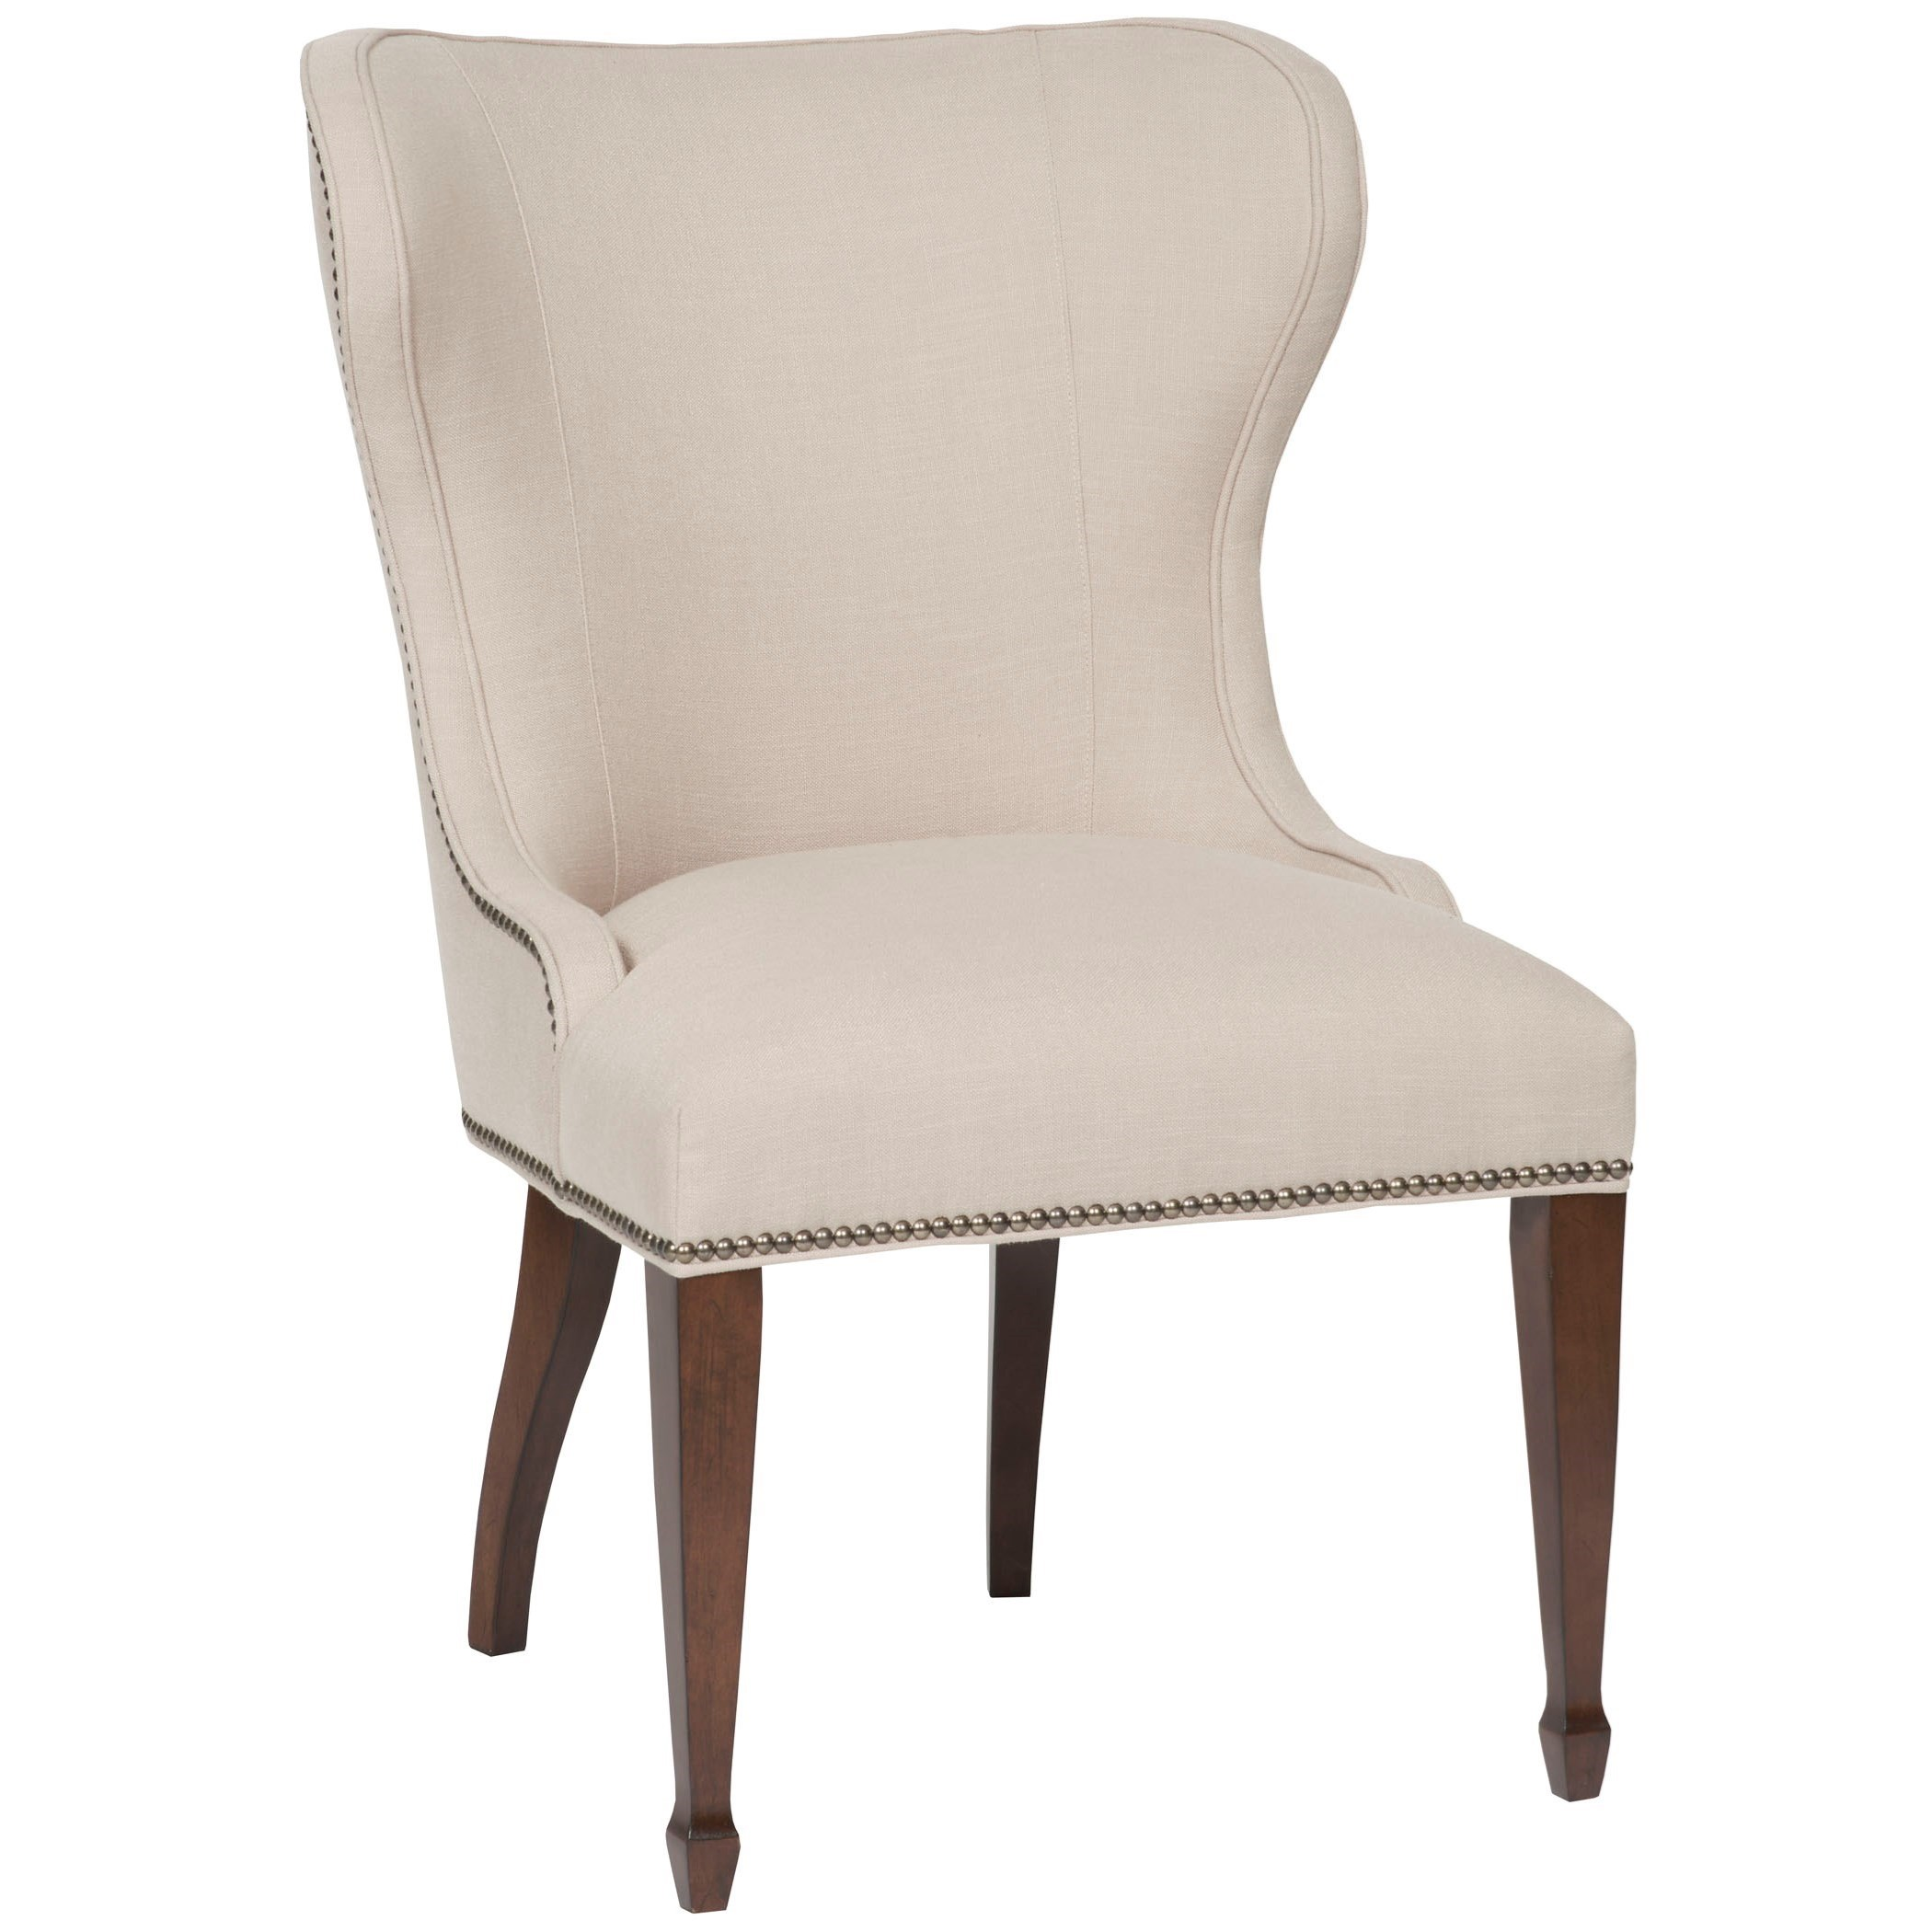 Vanguard Furniture Accent Chairs V424s Ava Side Chair With